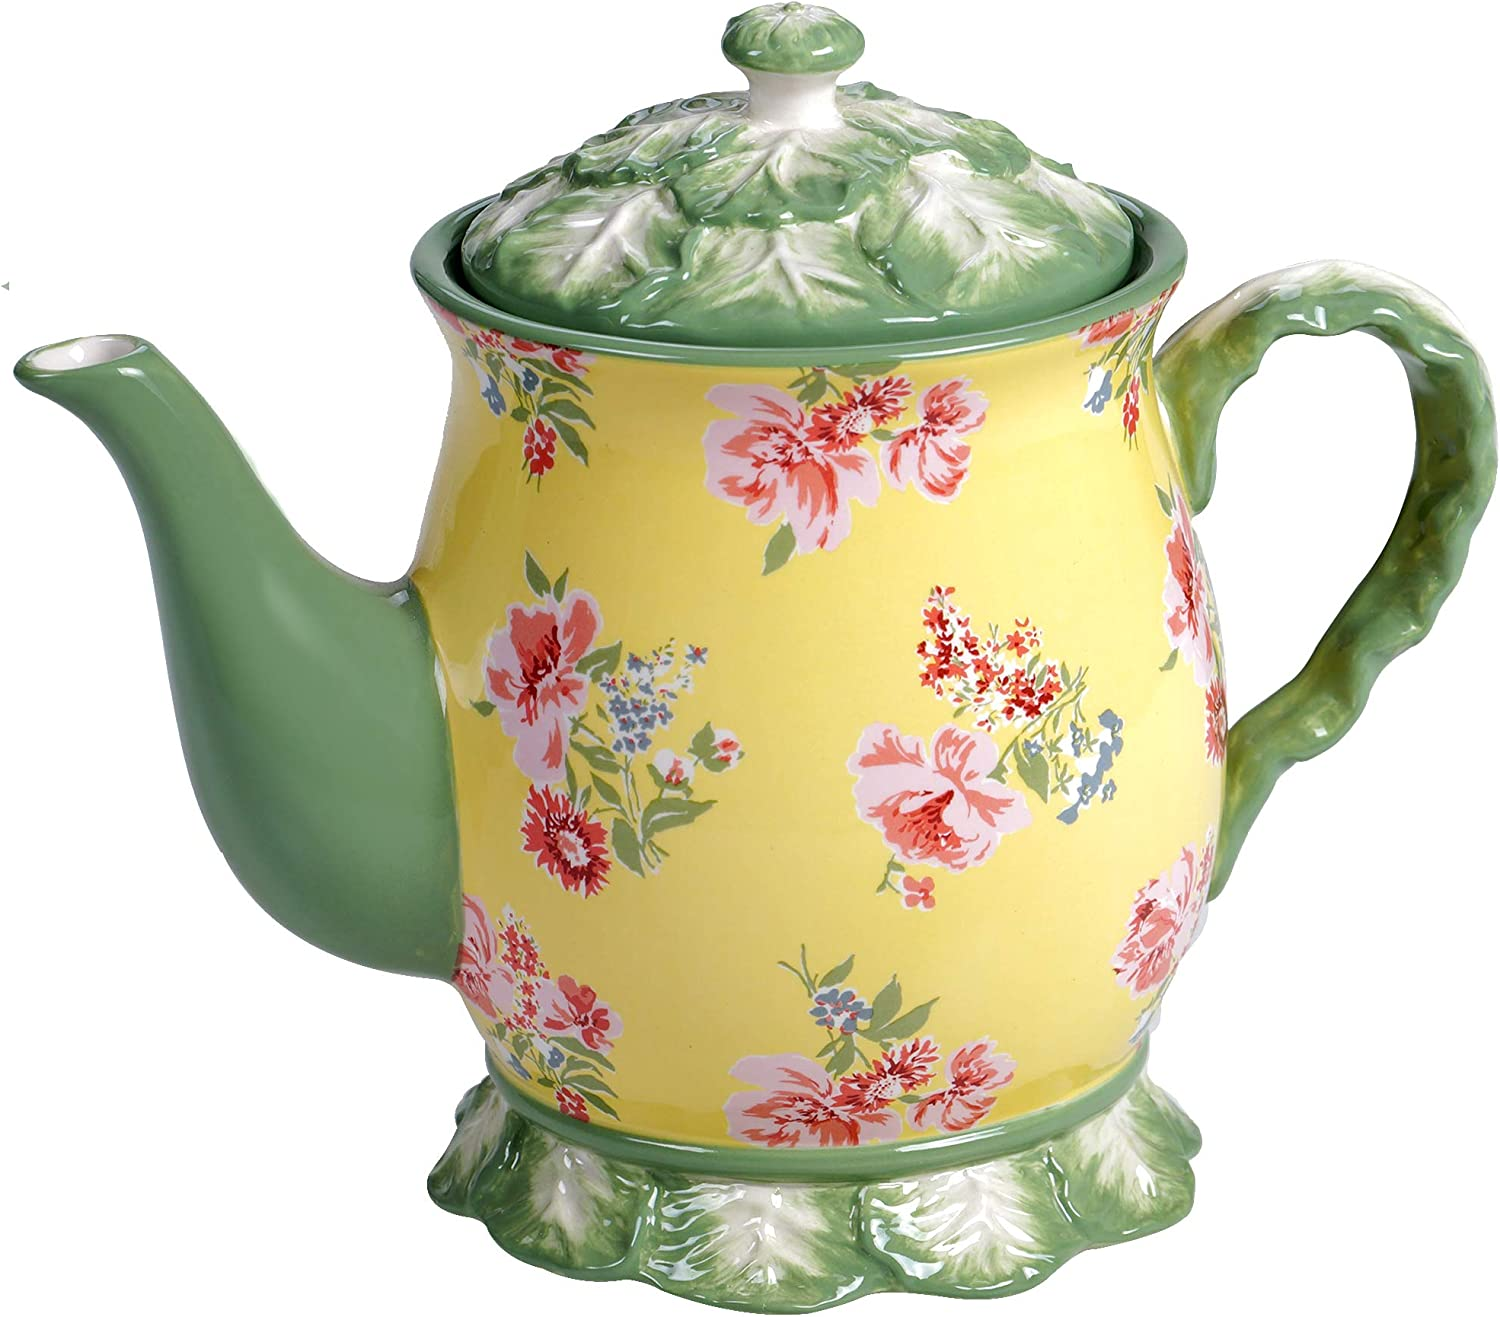 Certified International English Garden Teapot, 38 oz, Multicolored